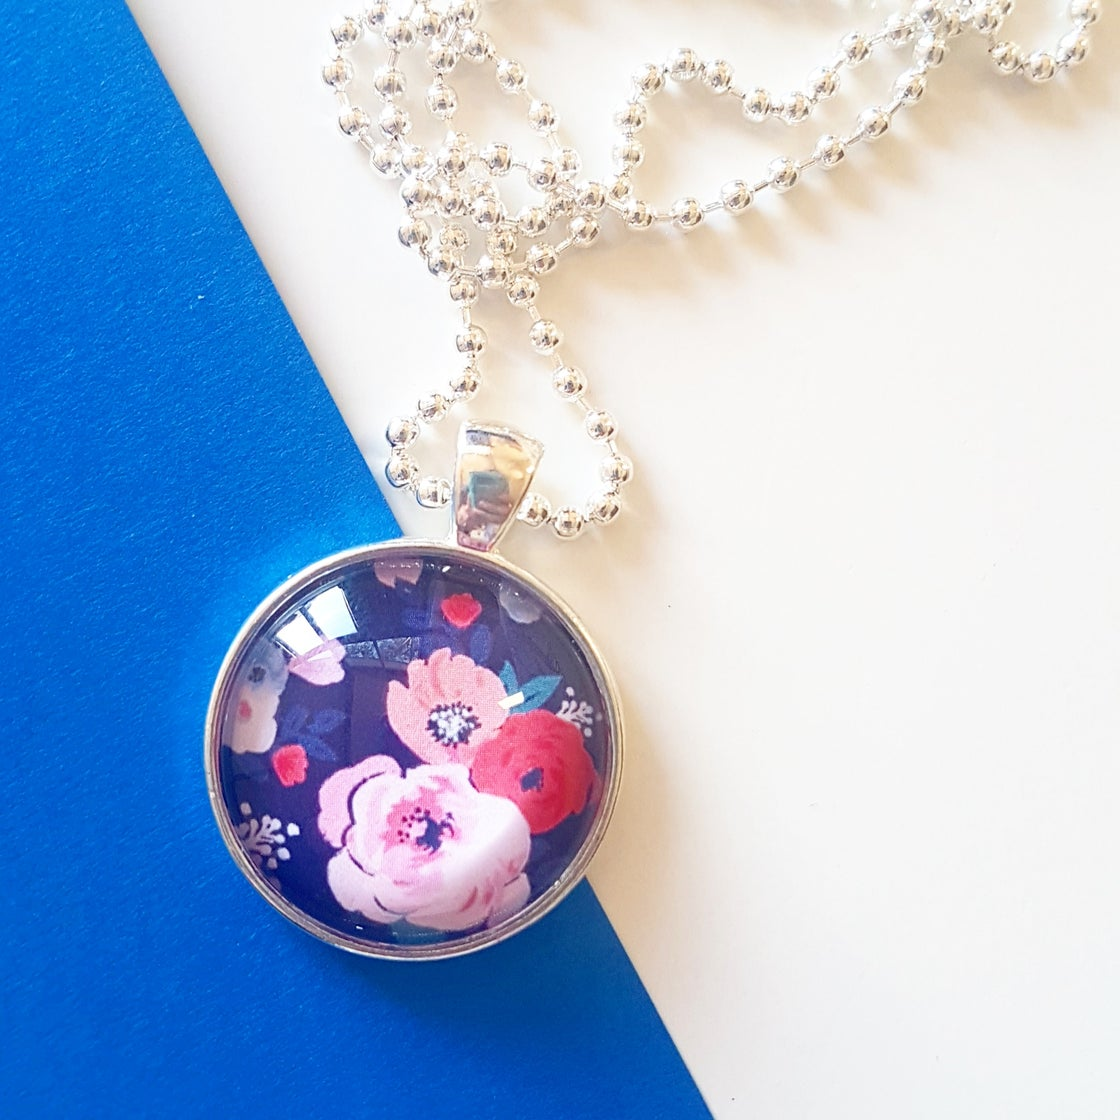 Image of 1inch pendant - Watercolour Floral on Navy